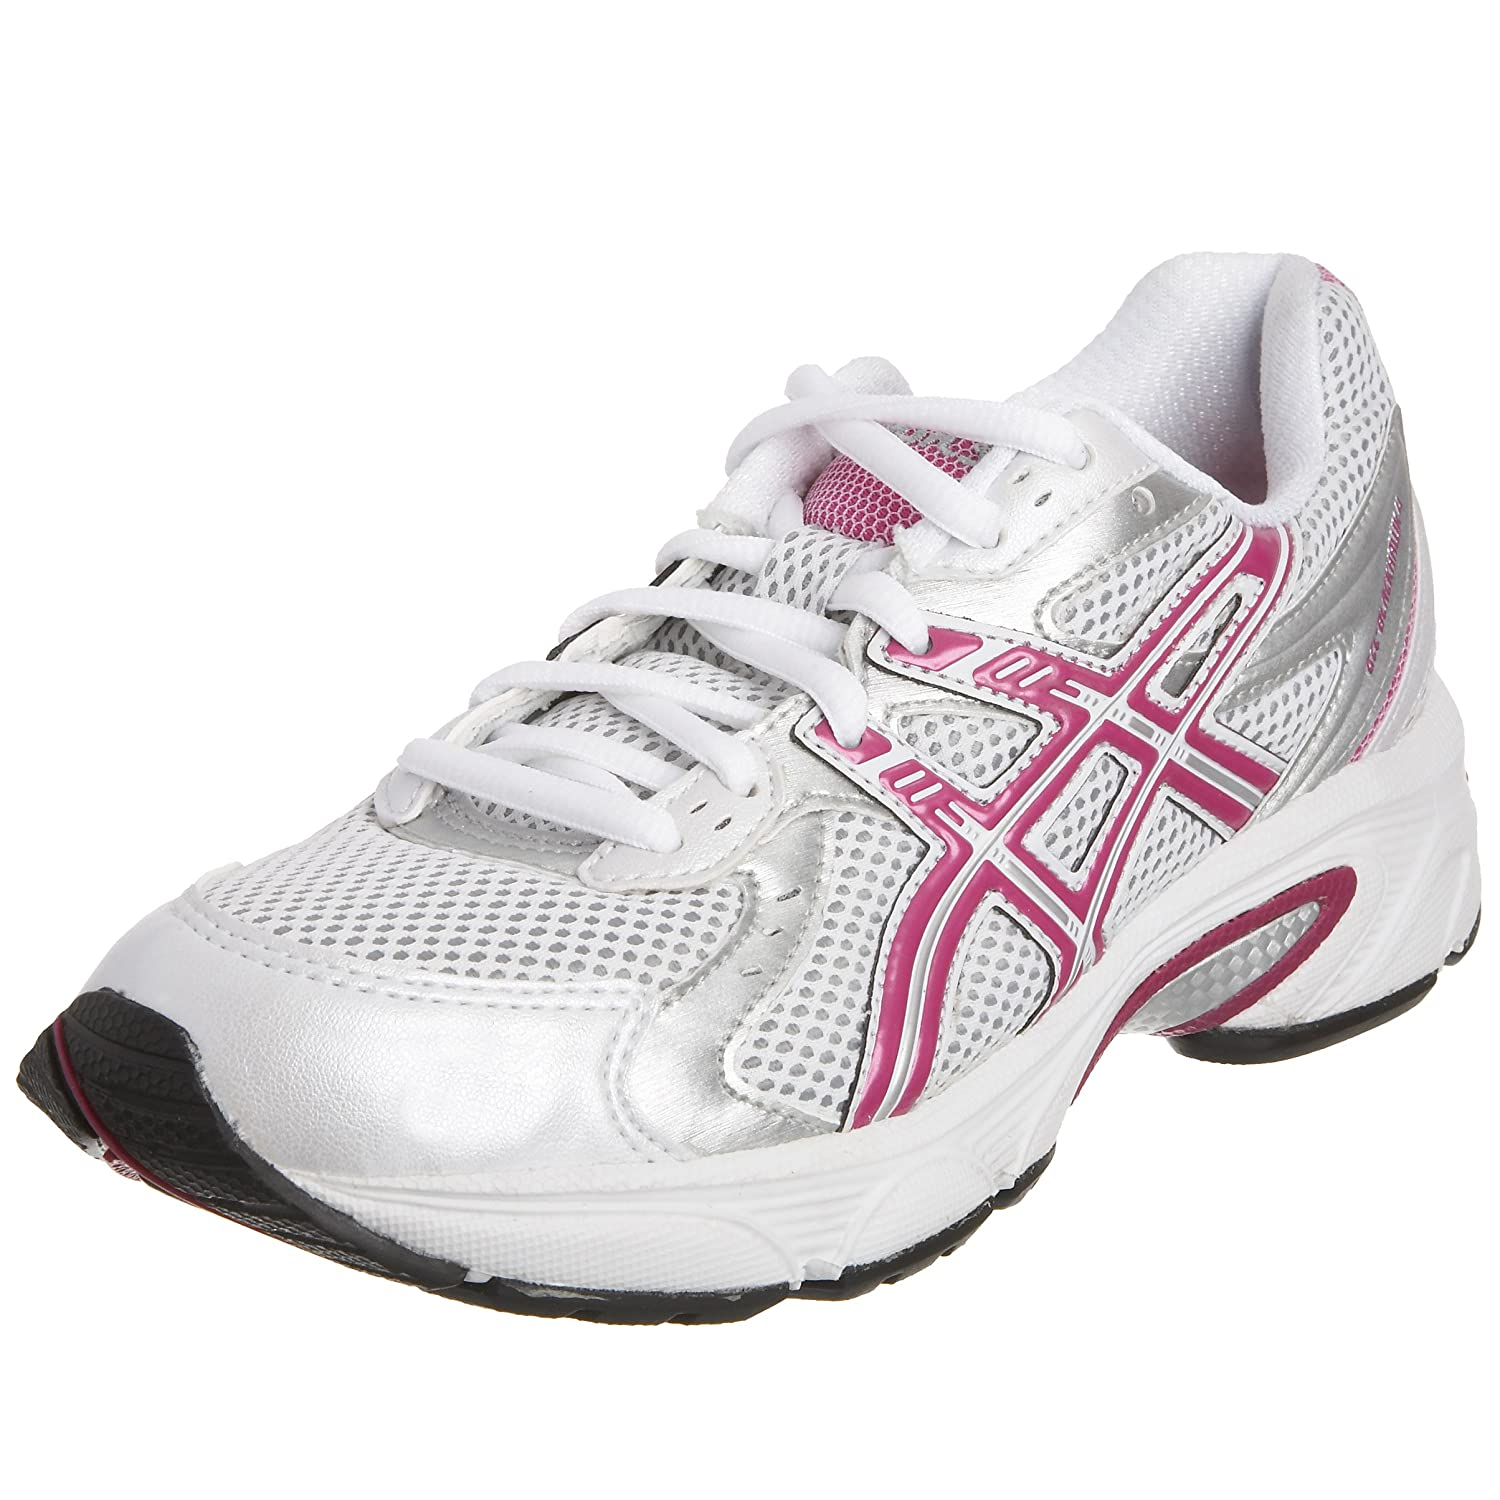 Asics Women's Gel Blackhawk 4 Running Shoe